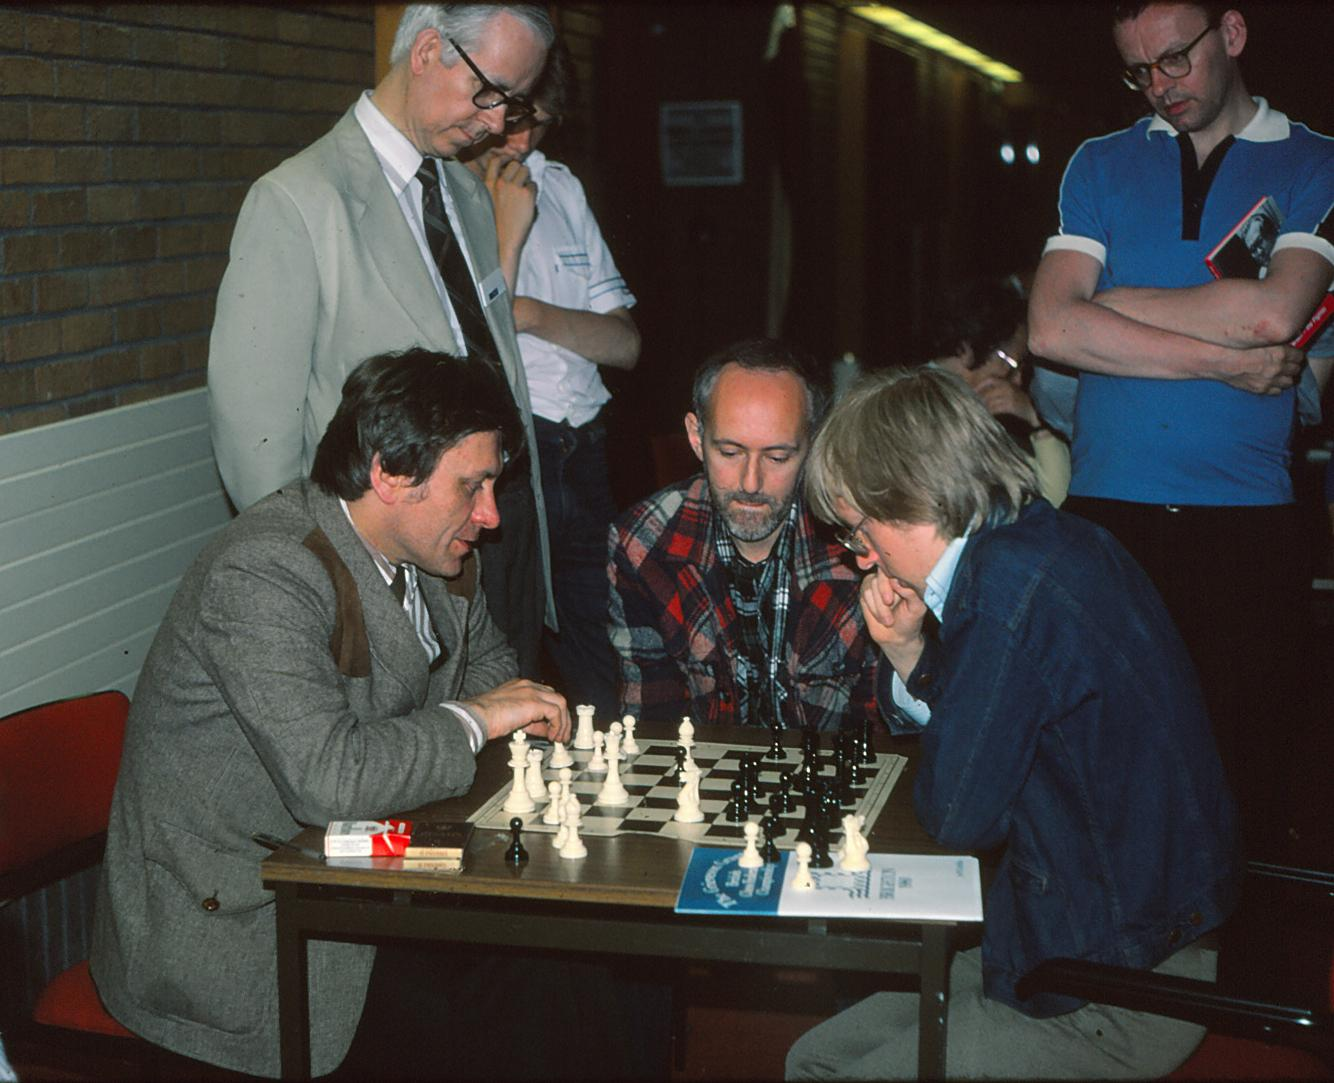 LWB observes analysis between David Rumens and Murray Chandler from Brighton 1980